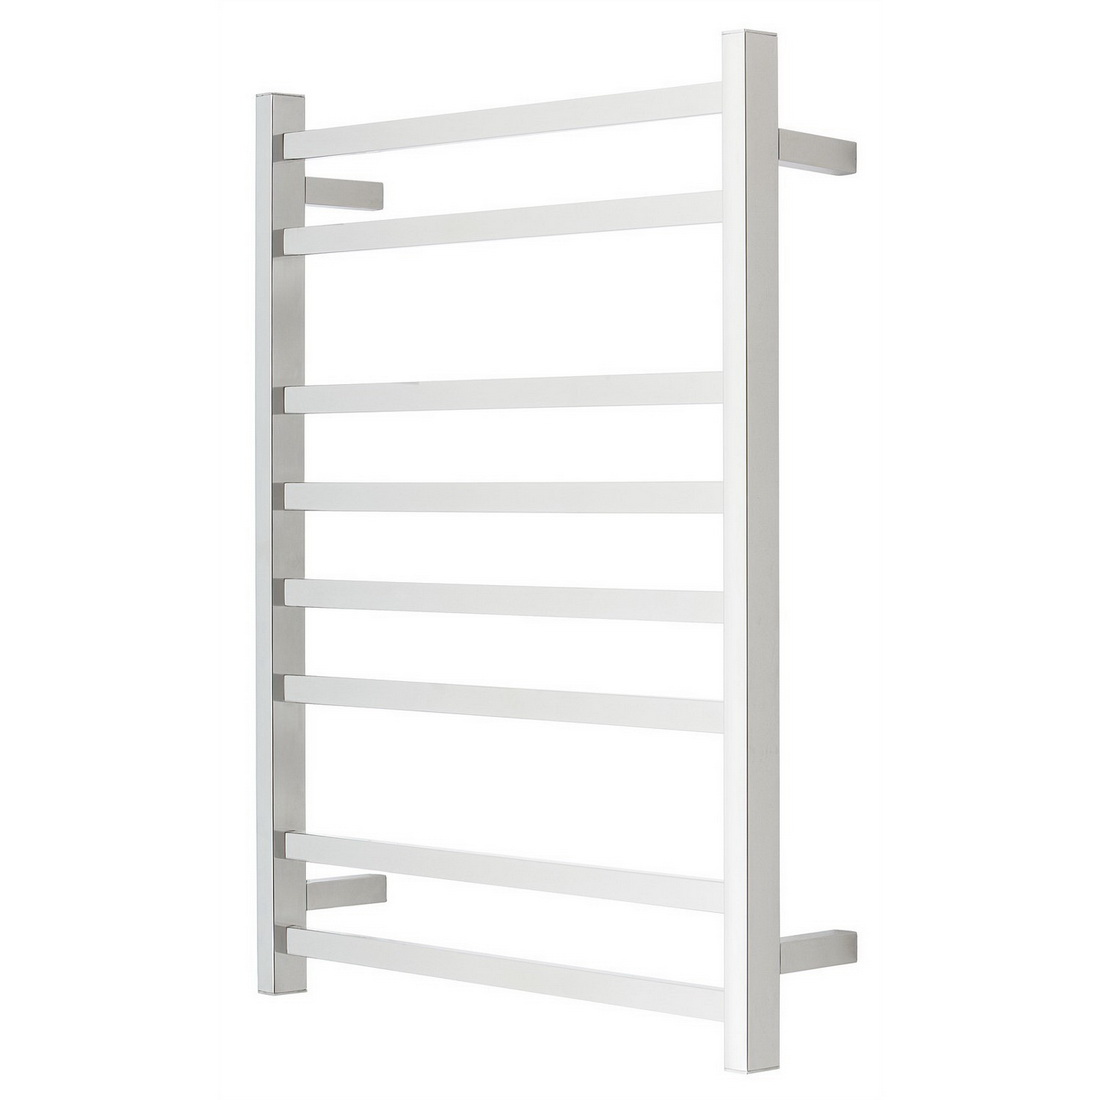 Alexander Elan Square Heated Towel Ladder 800 x 600 mm Polished ELA-8A08